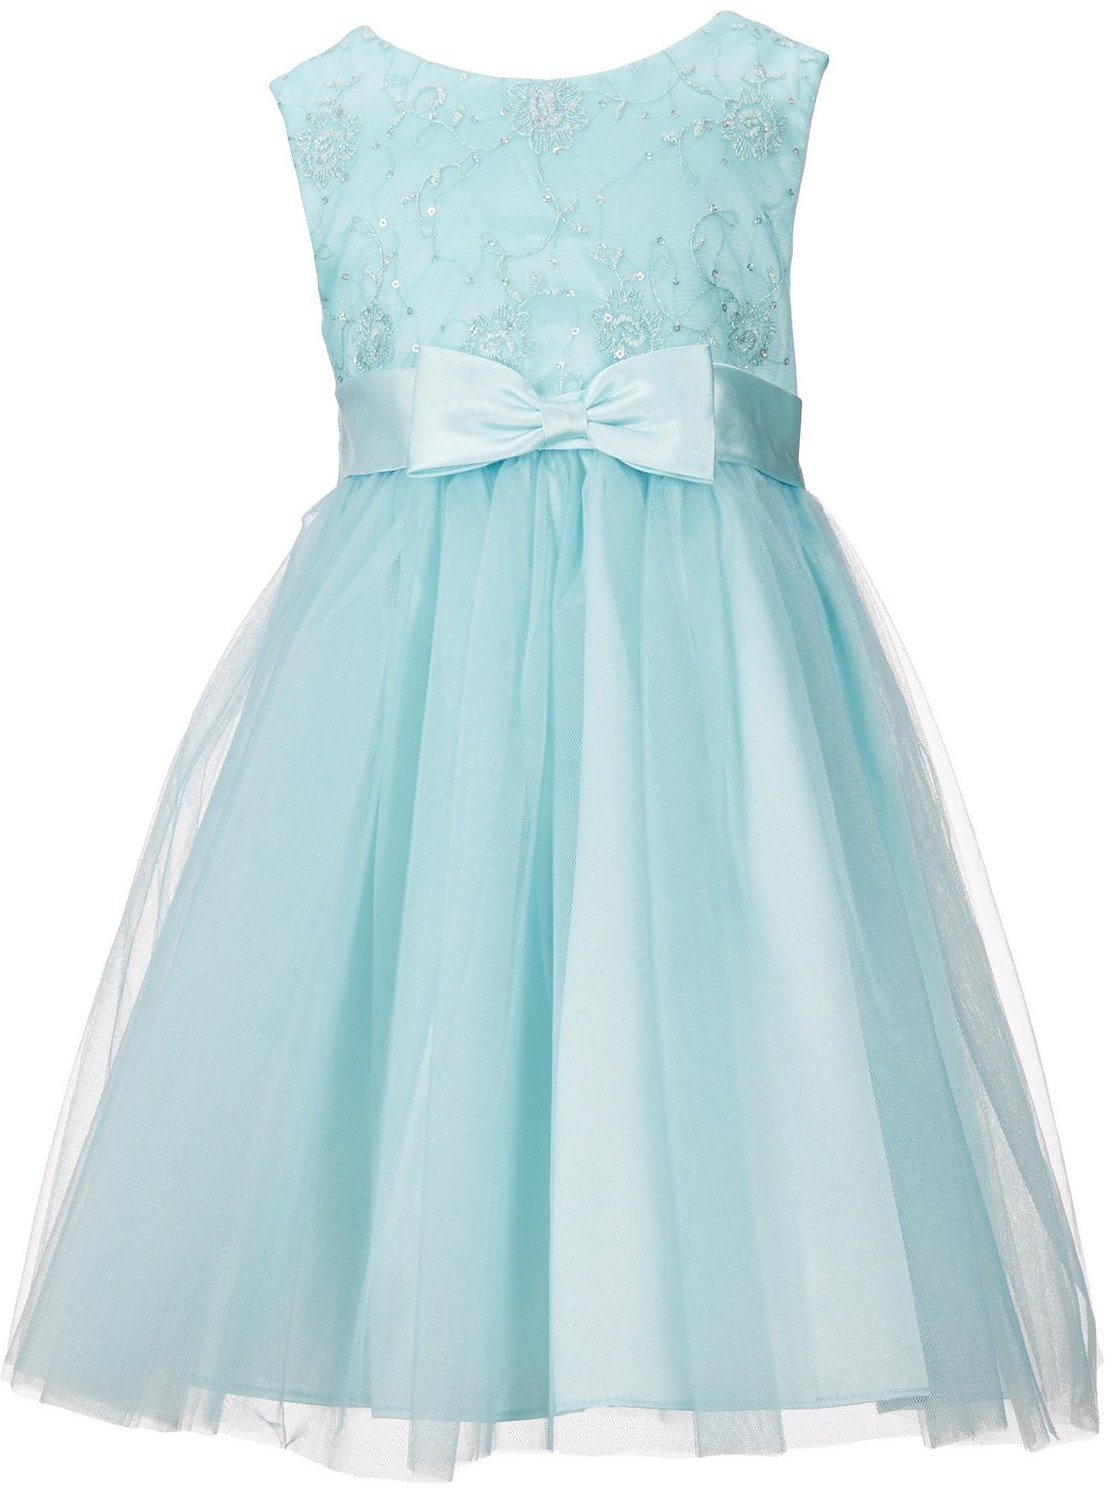 Bonnie Jean Little Girls Spangled Embroidered Tulle-Overlay Skirt Dress 4